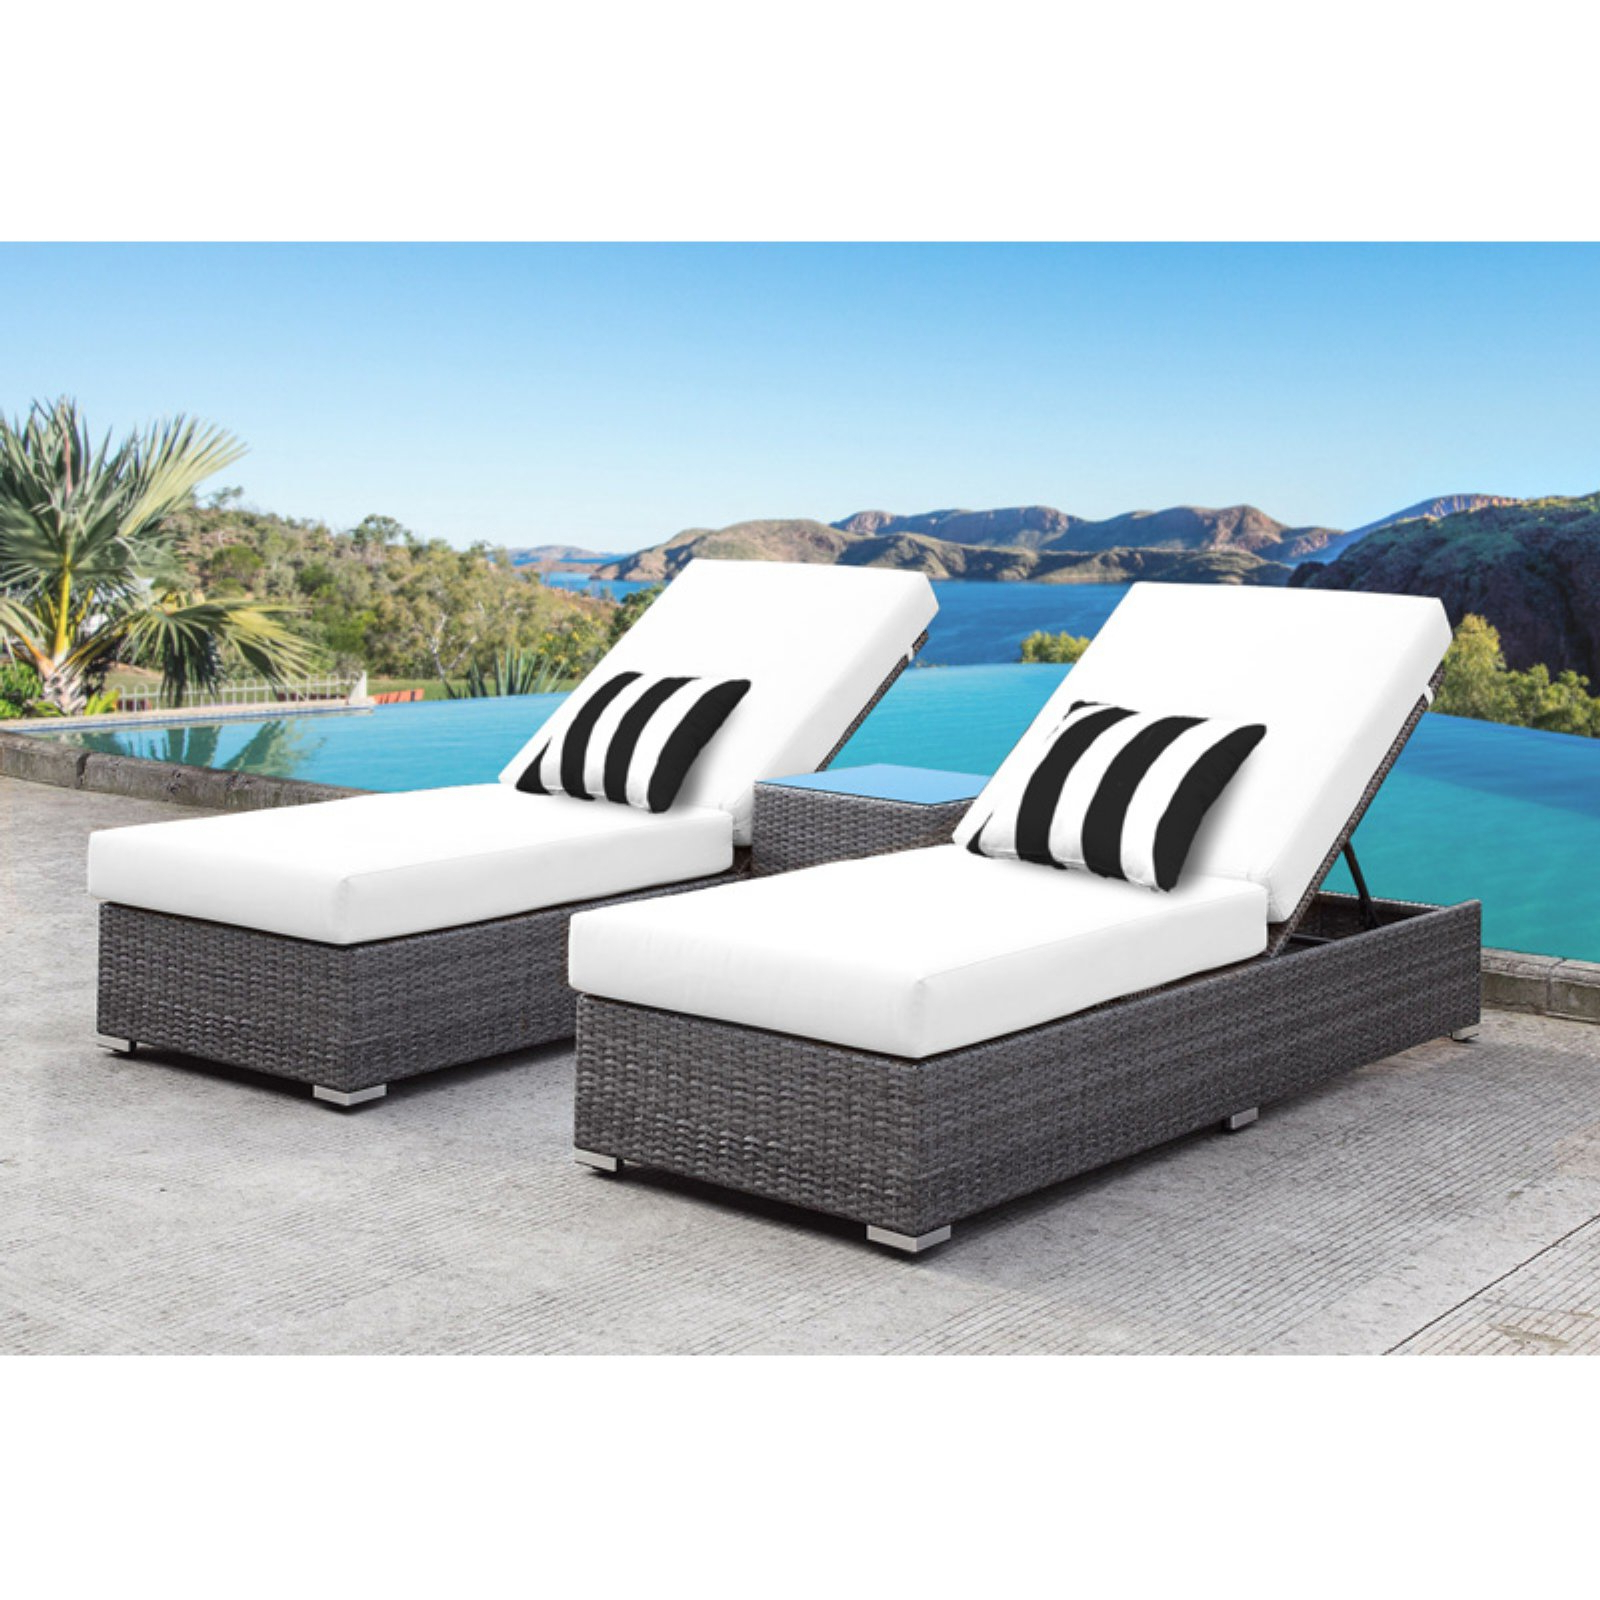 Most Up To Date Outdoor Solis Lusso Rattan Wicker 3 Piece Patio Chaise Intended For Outdoor 3 Piece Wicker Chaise Lounges And Table Sets (View 15 of 25)